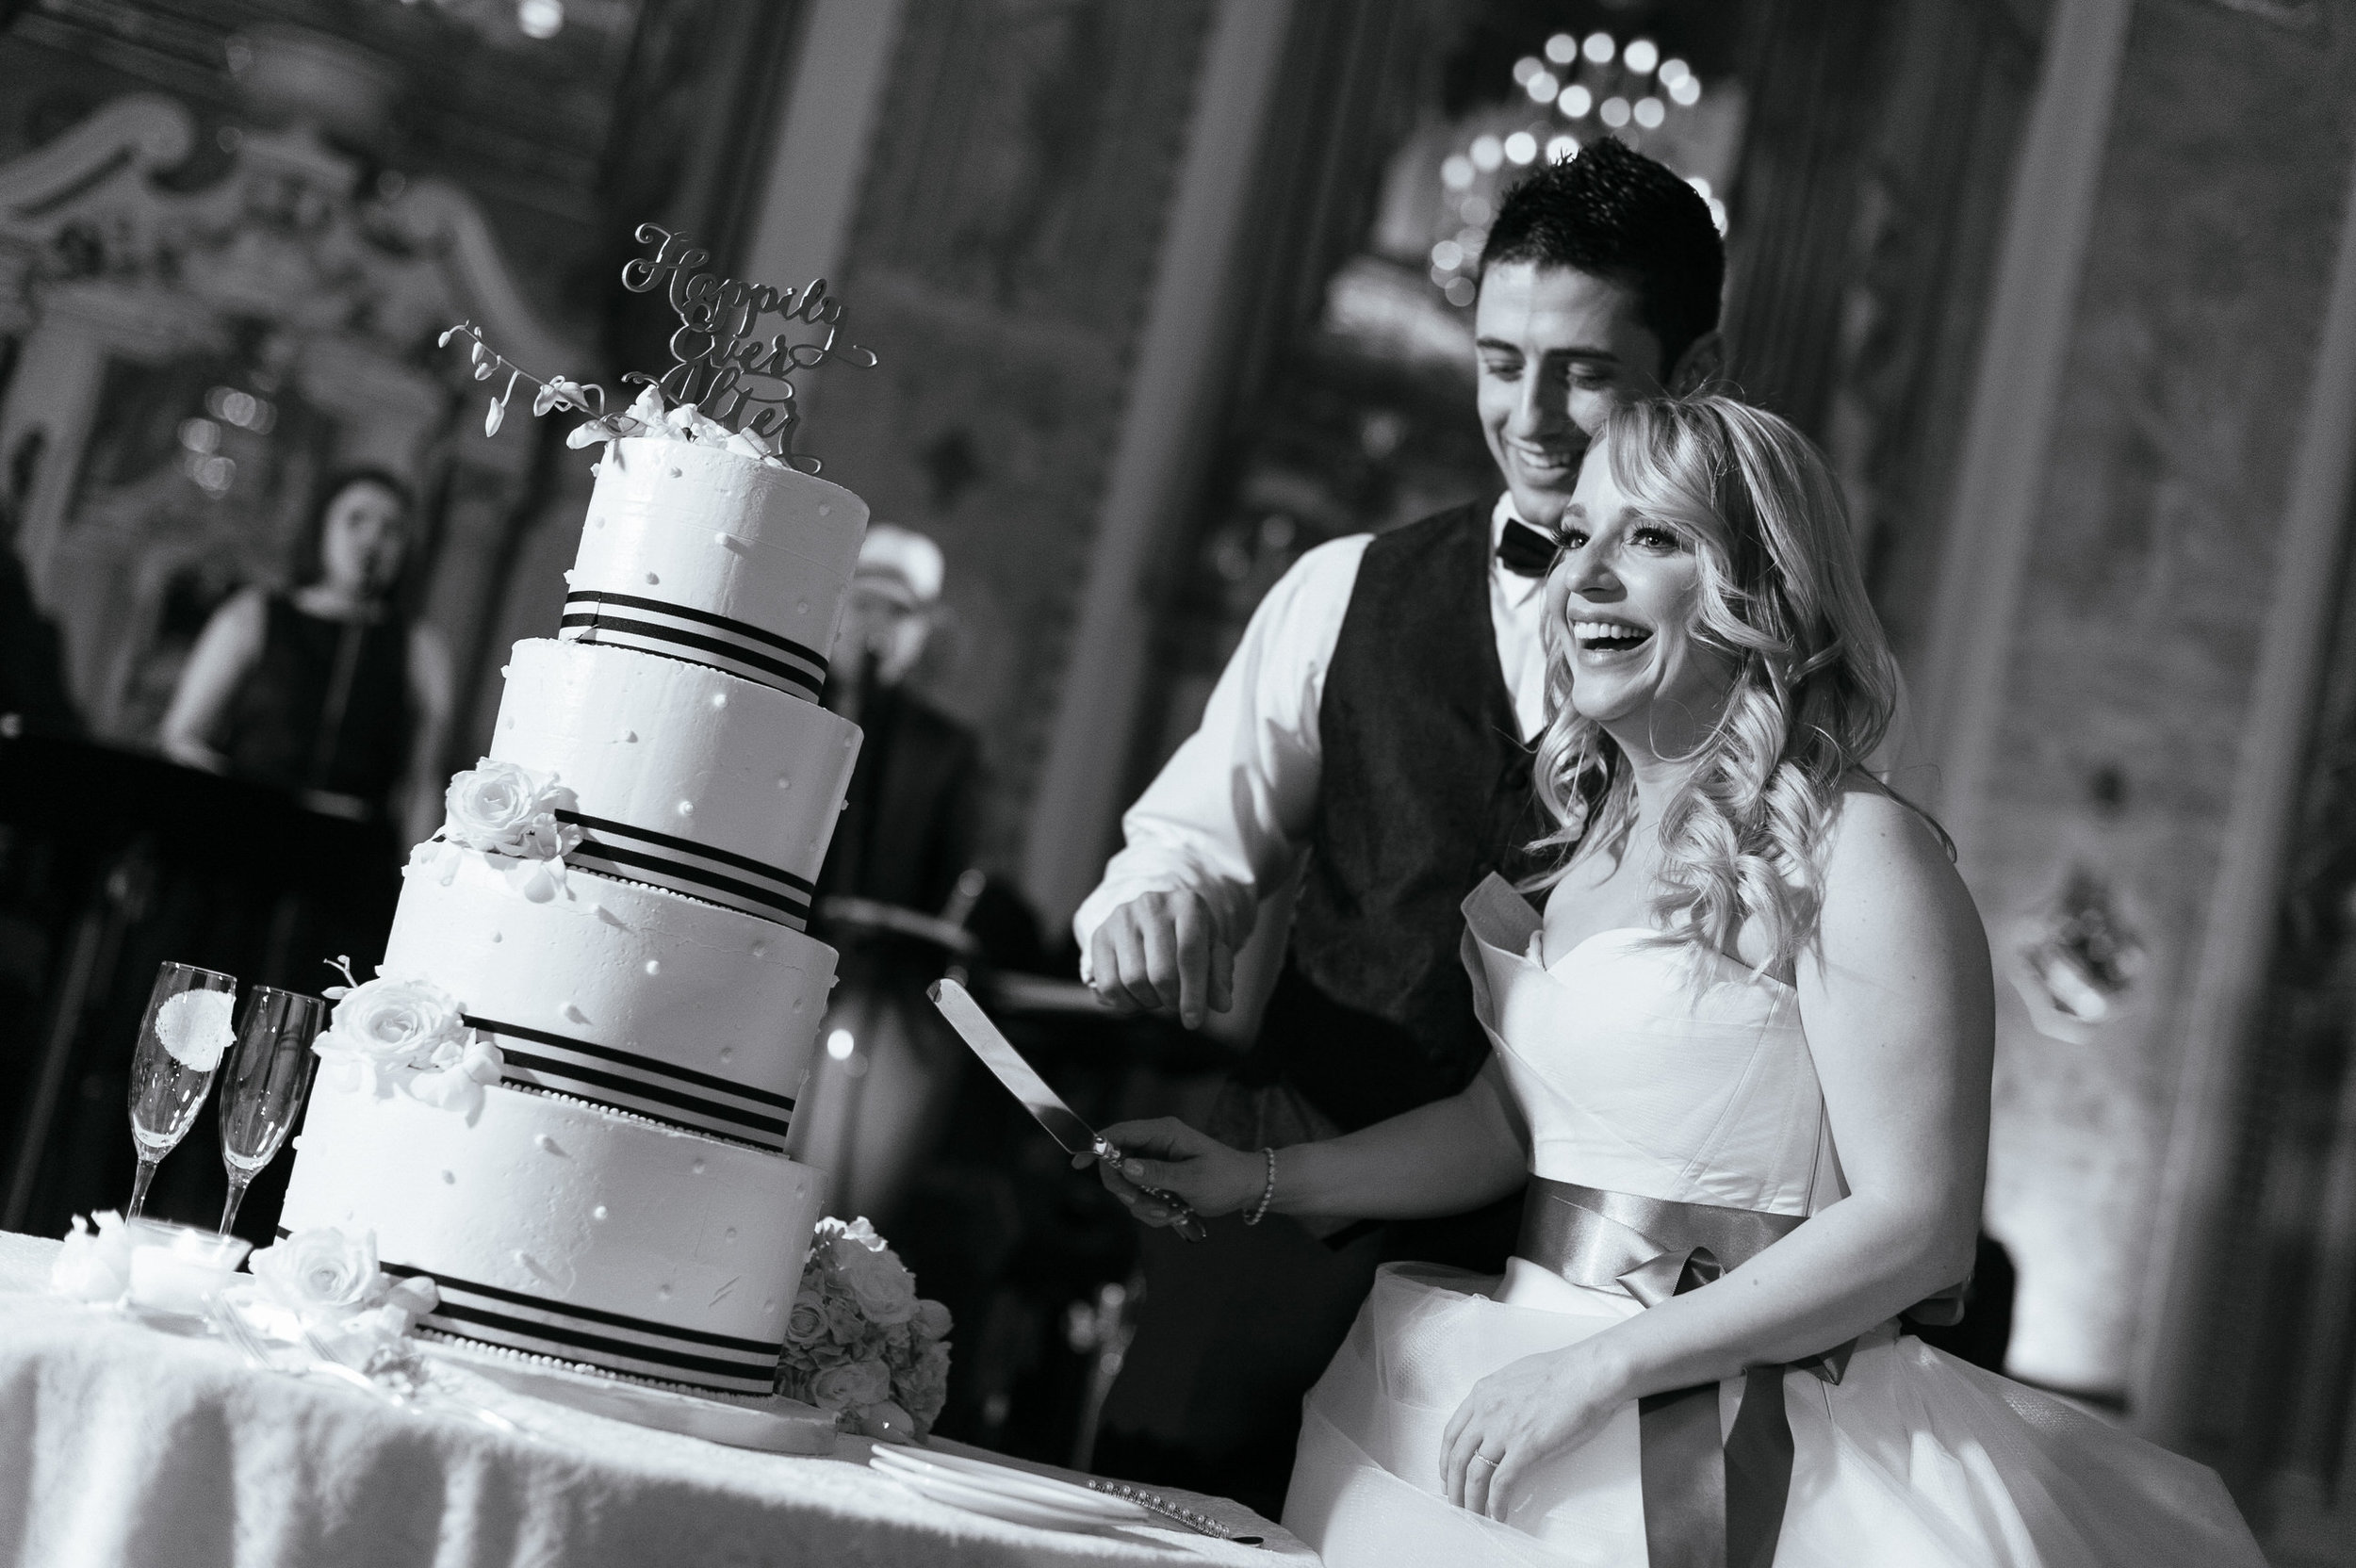 30 Hotel DuPont Wedding Cutting the Cake Wilmington Wedding Planner.jpg